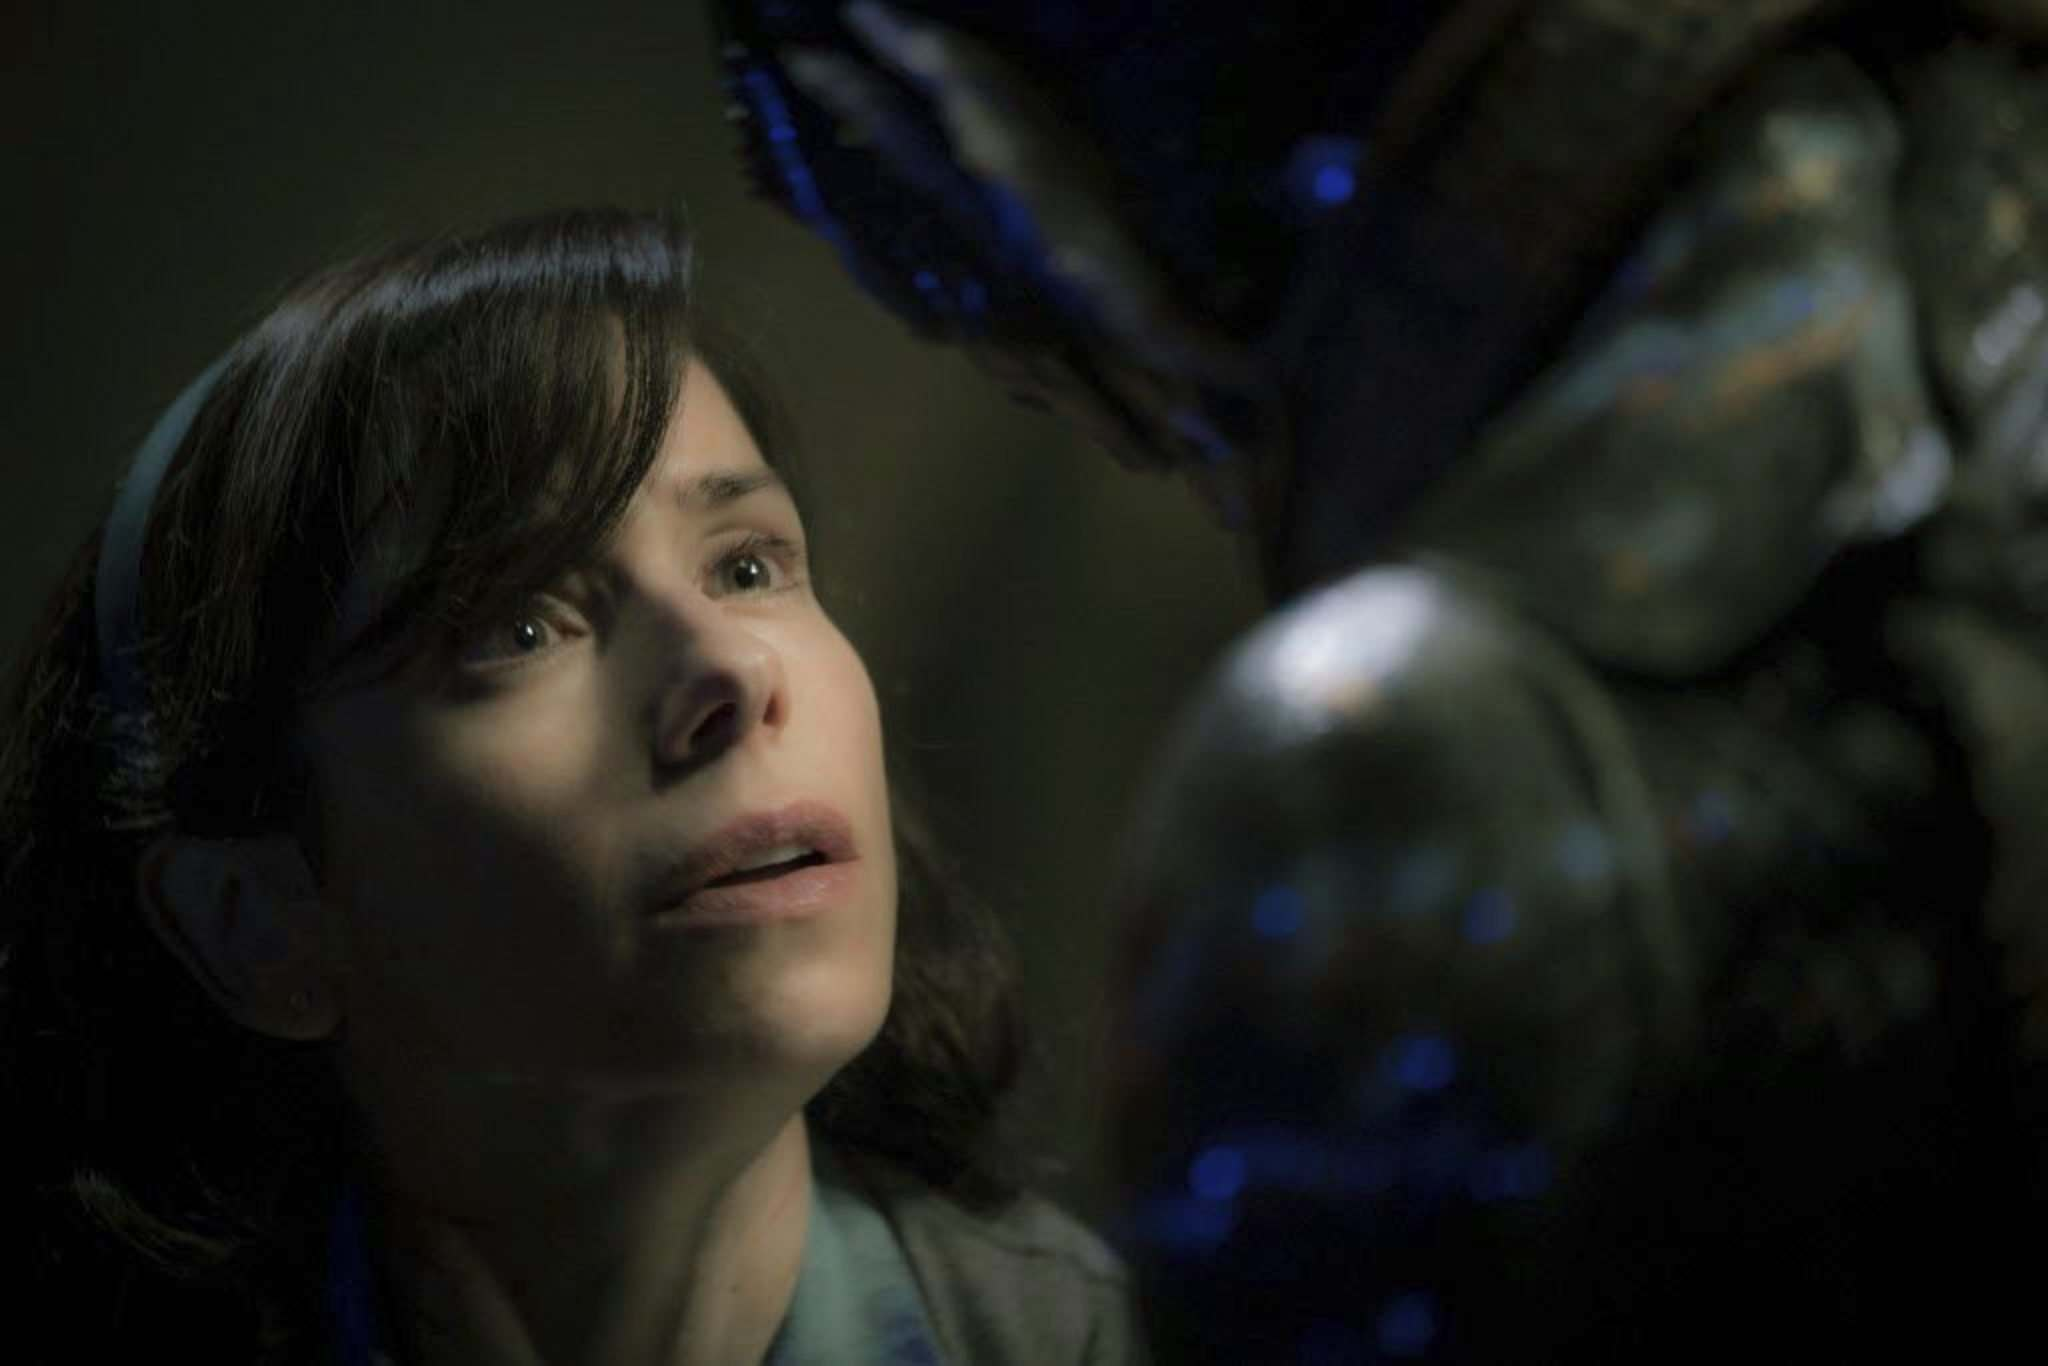 Sally Hawkins (left) and The Shape of Water have been nominated for Oscars, but are Academy Award voters ready for a sci-fi fantasy? (Kerry Hayes / 20th Century Fox)